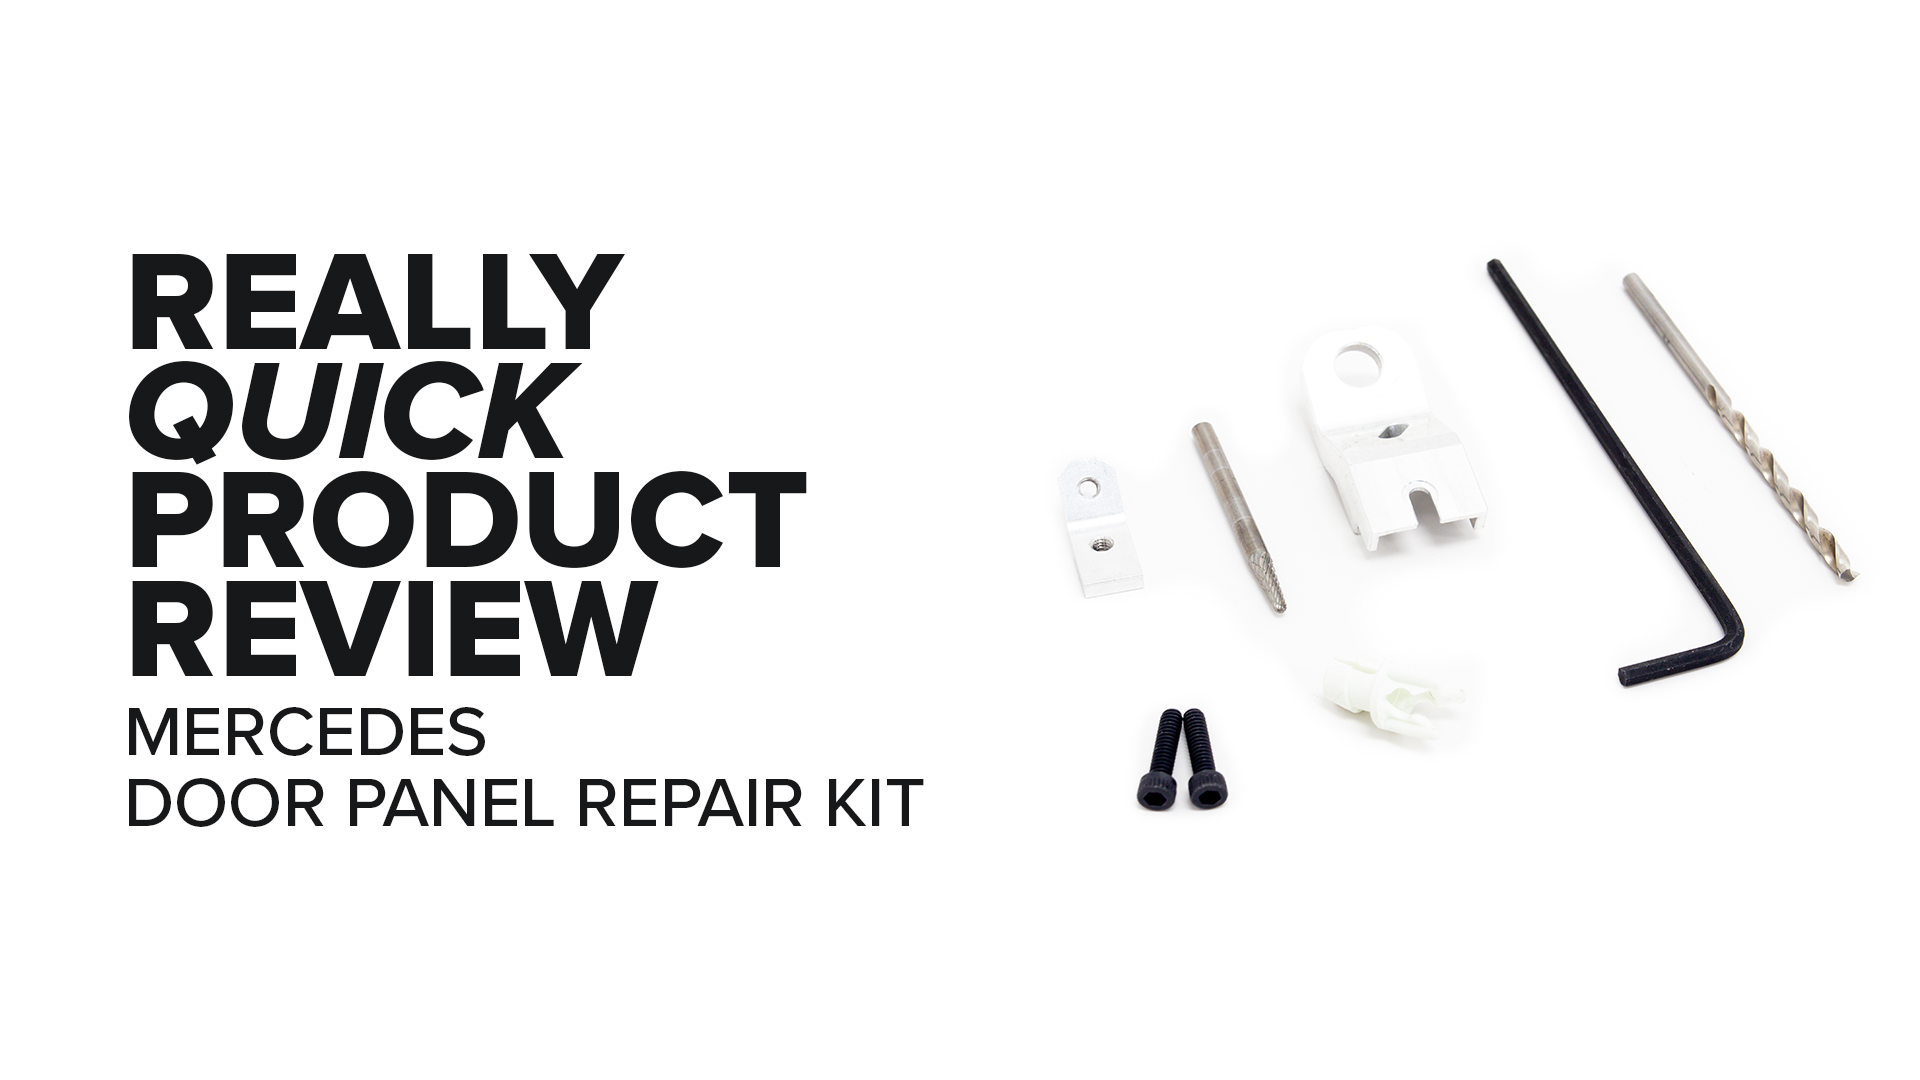 Mercedes-Benz W204 (C300, C350, C250) Door Panel Lever Repair Kit - Features And Product Review